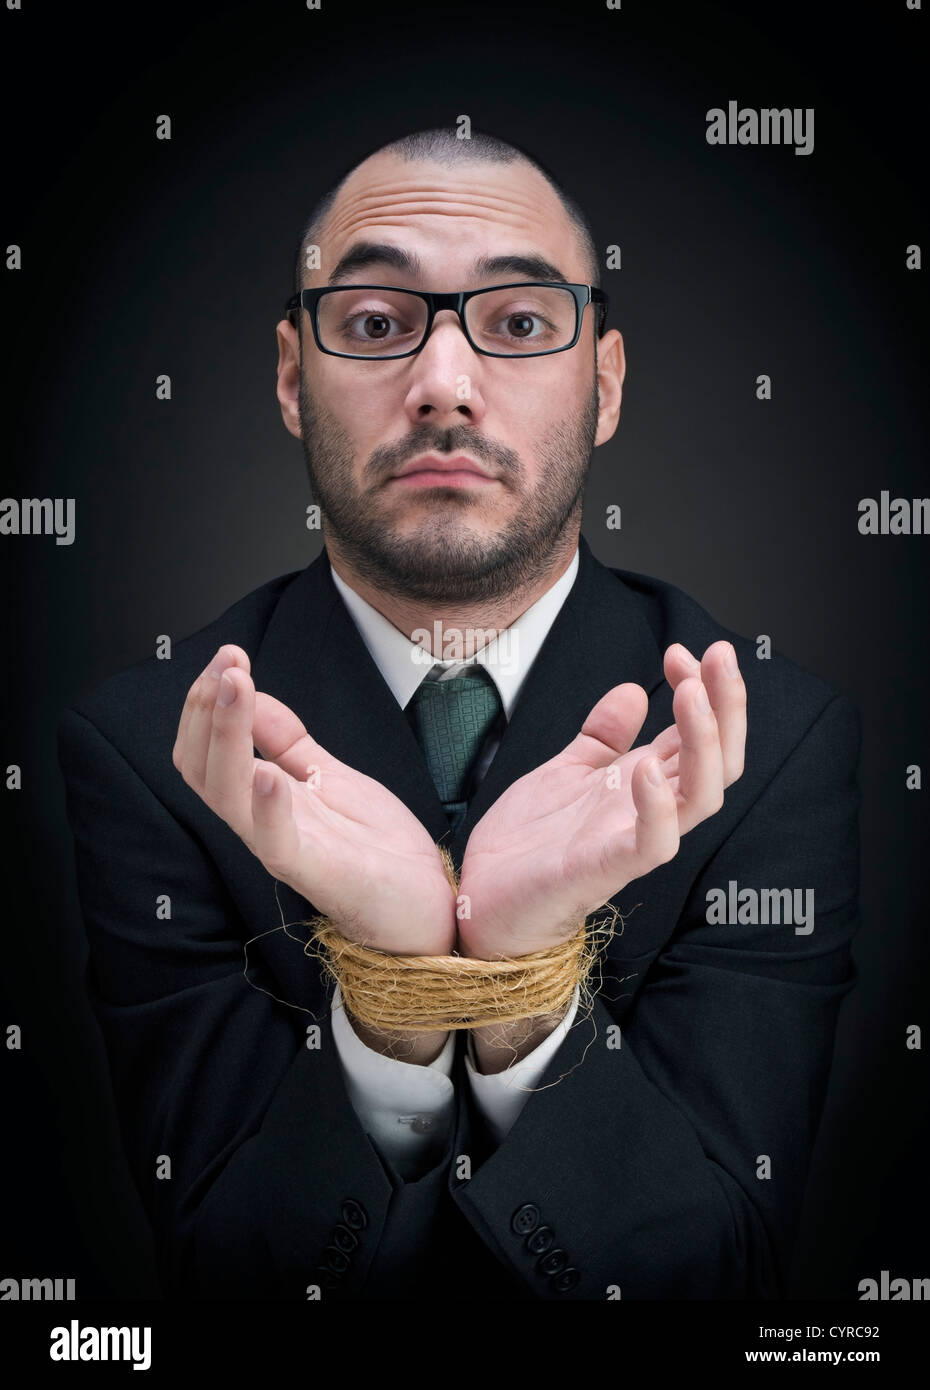 A man on a suit shows his tied hands with a puzzled expression. - Stock Image